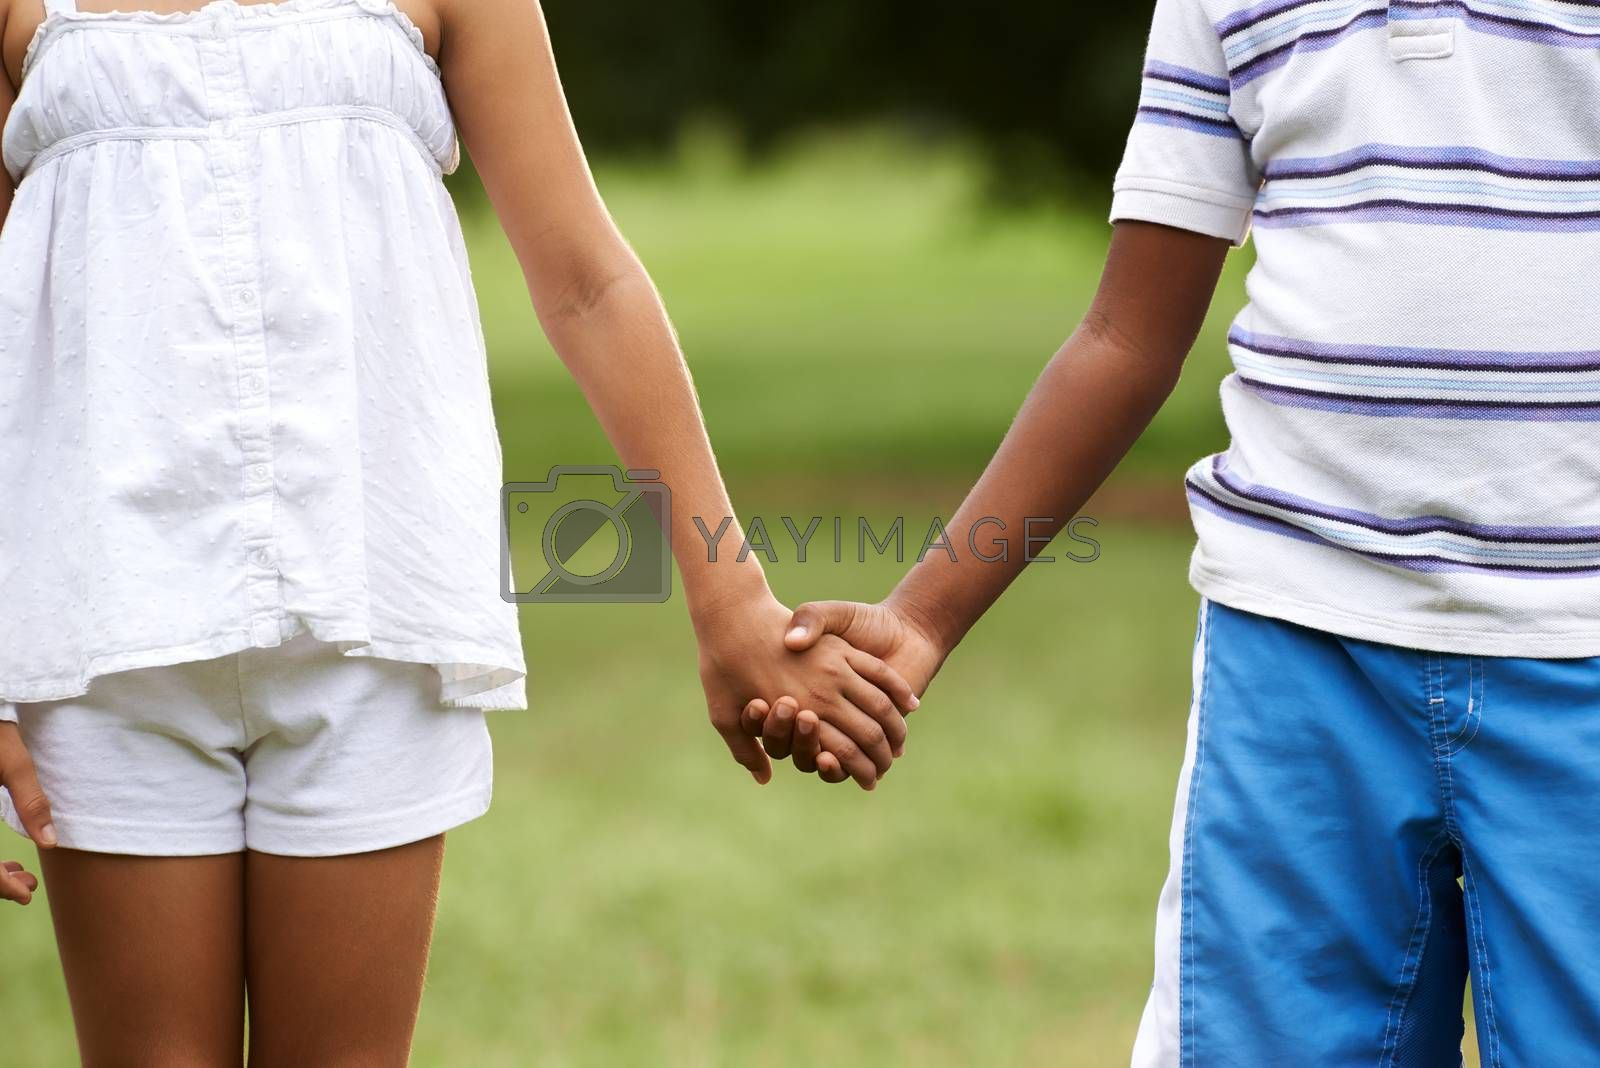 Interracial people in love with caucasian little girl and african boy holding hands in park. Cropped view